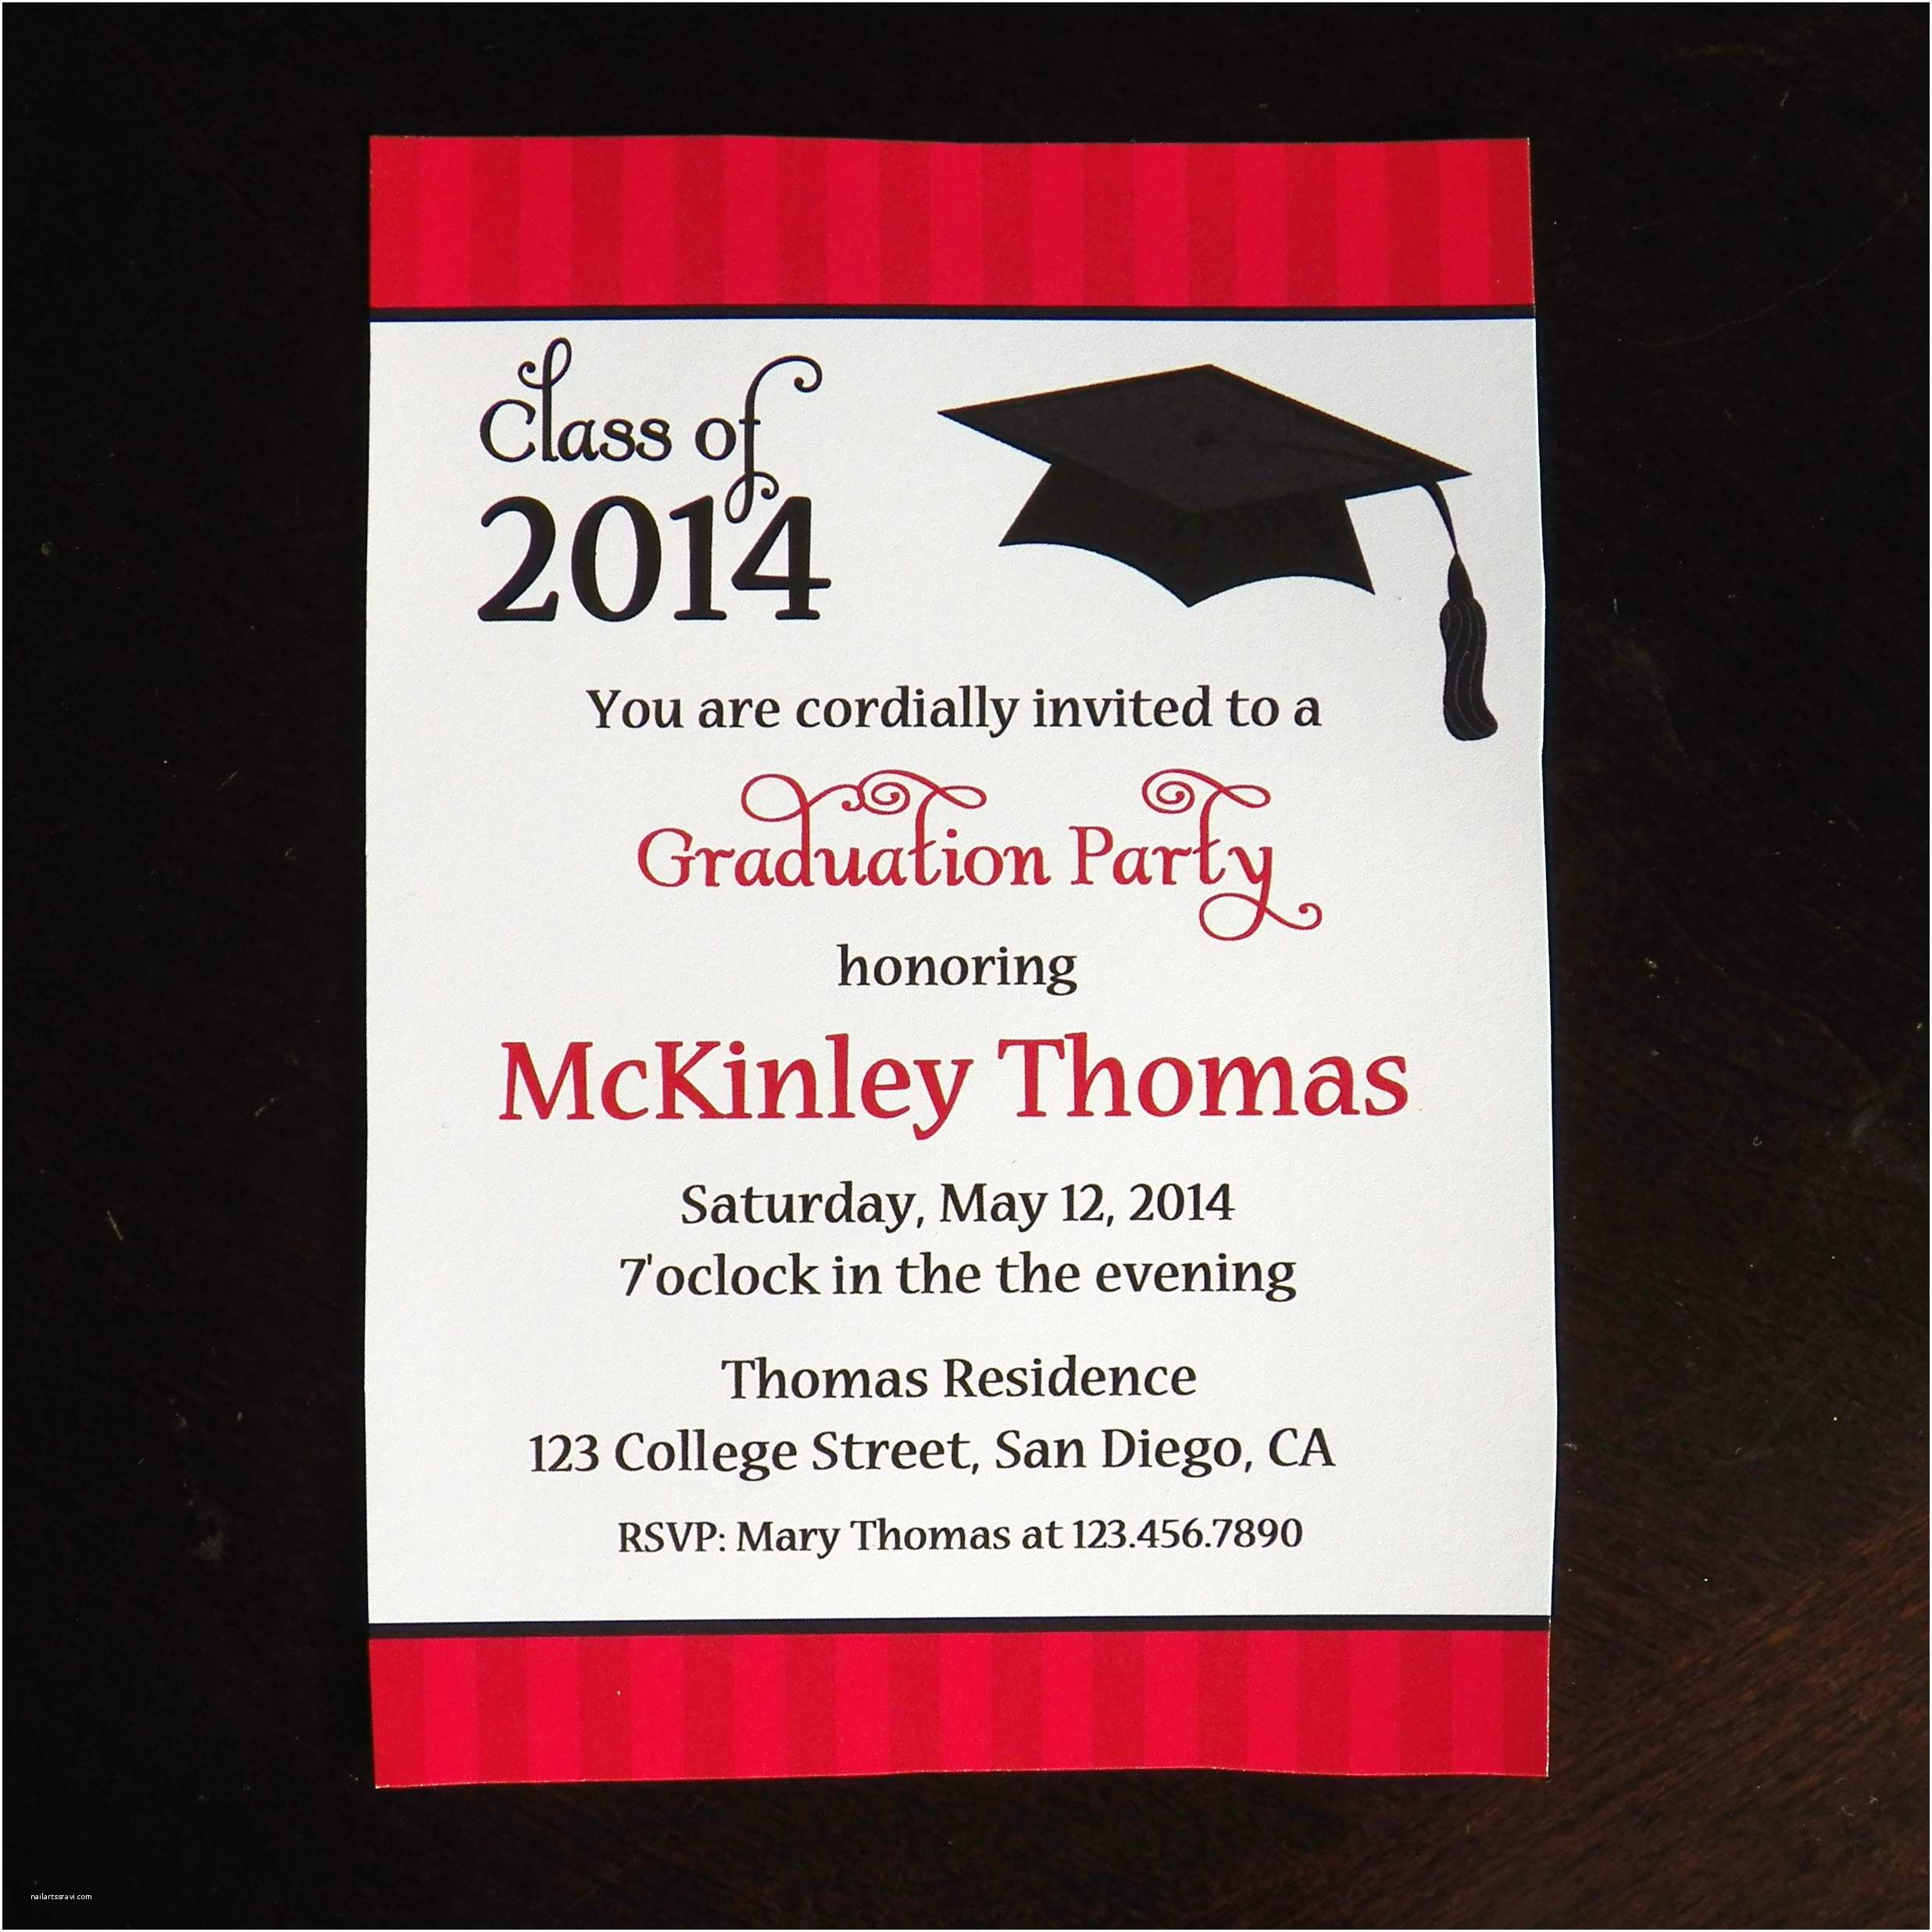 College Graduation Party Invitations Graduation Party Hats F to Mckinley that Party Chick